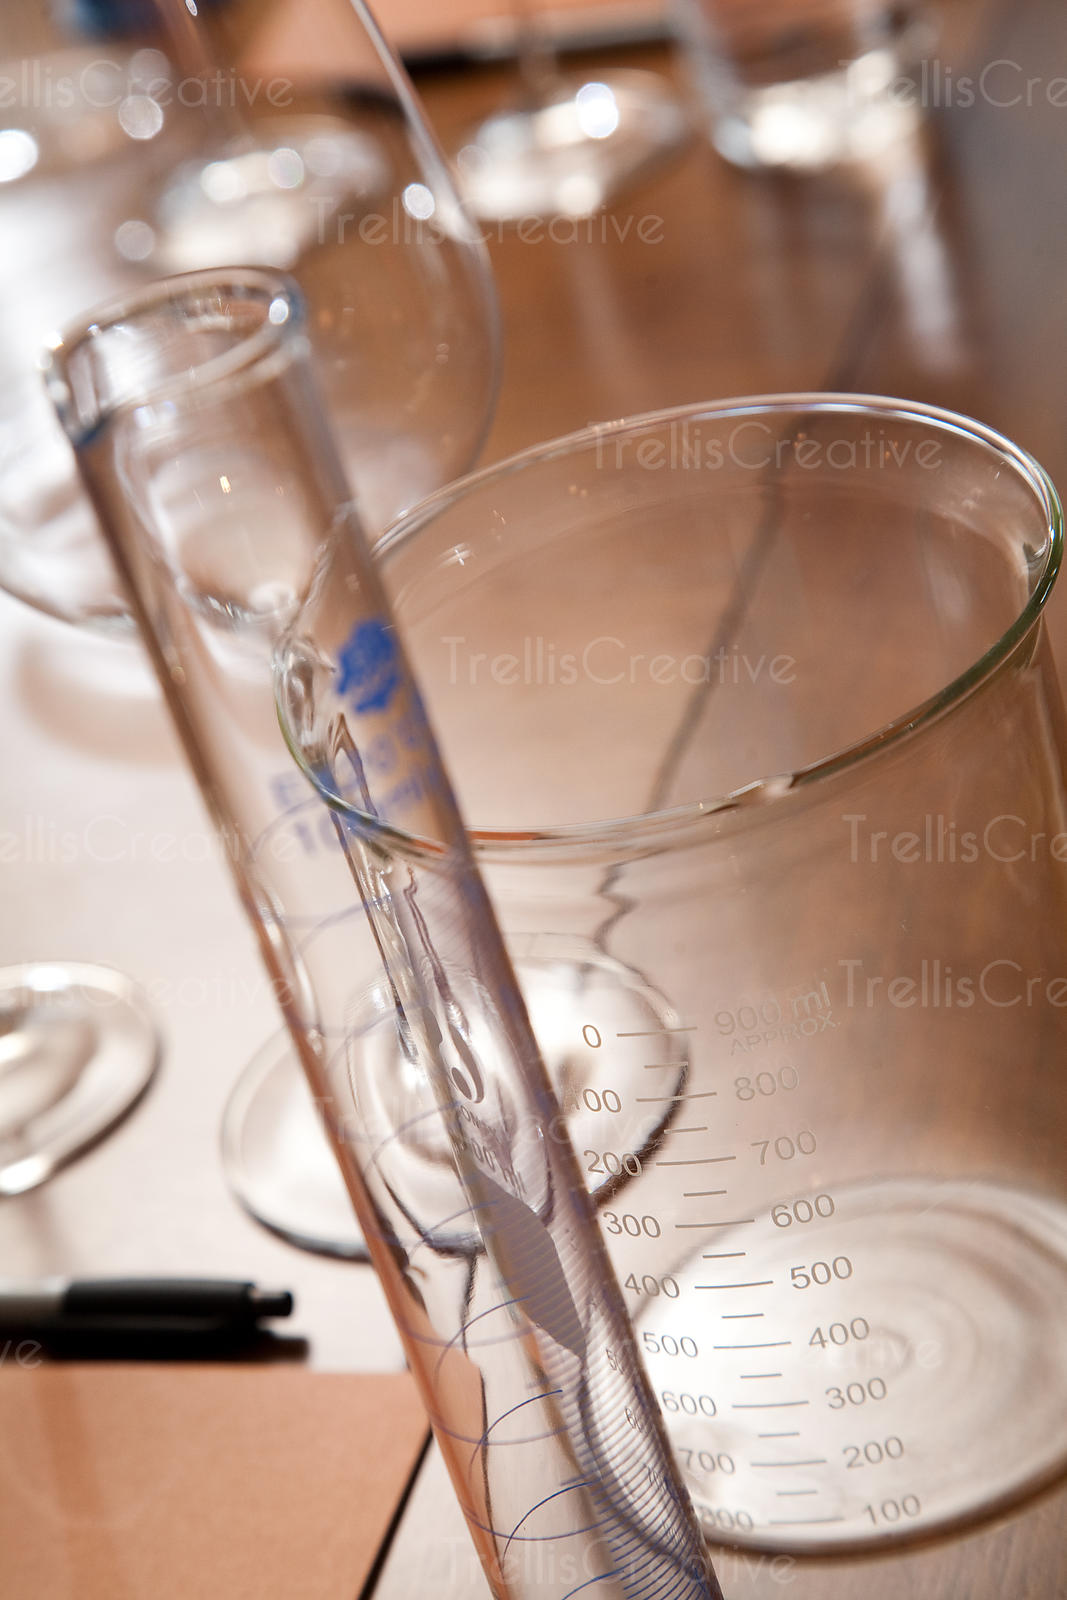 Glass beakers and cylinders for measuring and blending wine